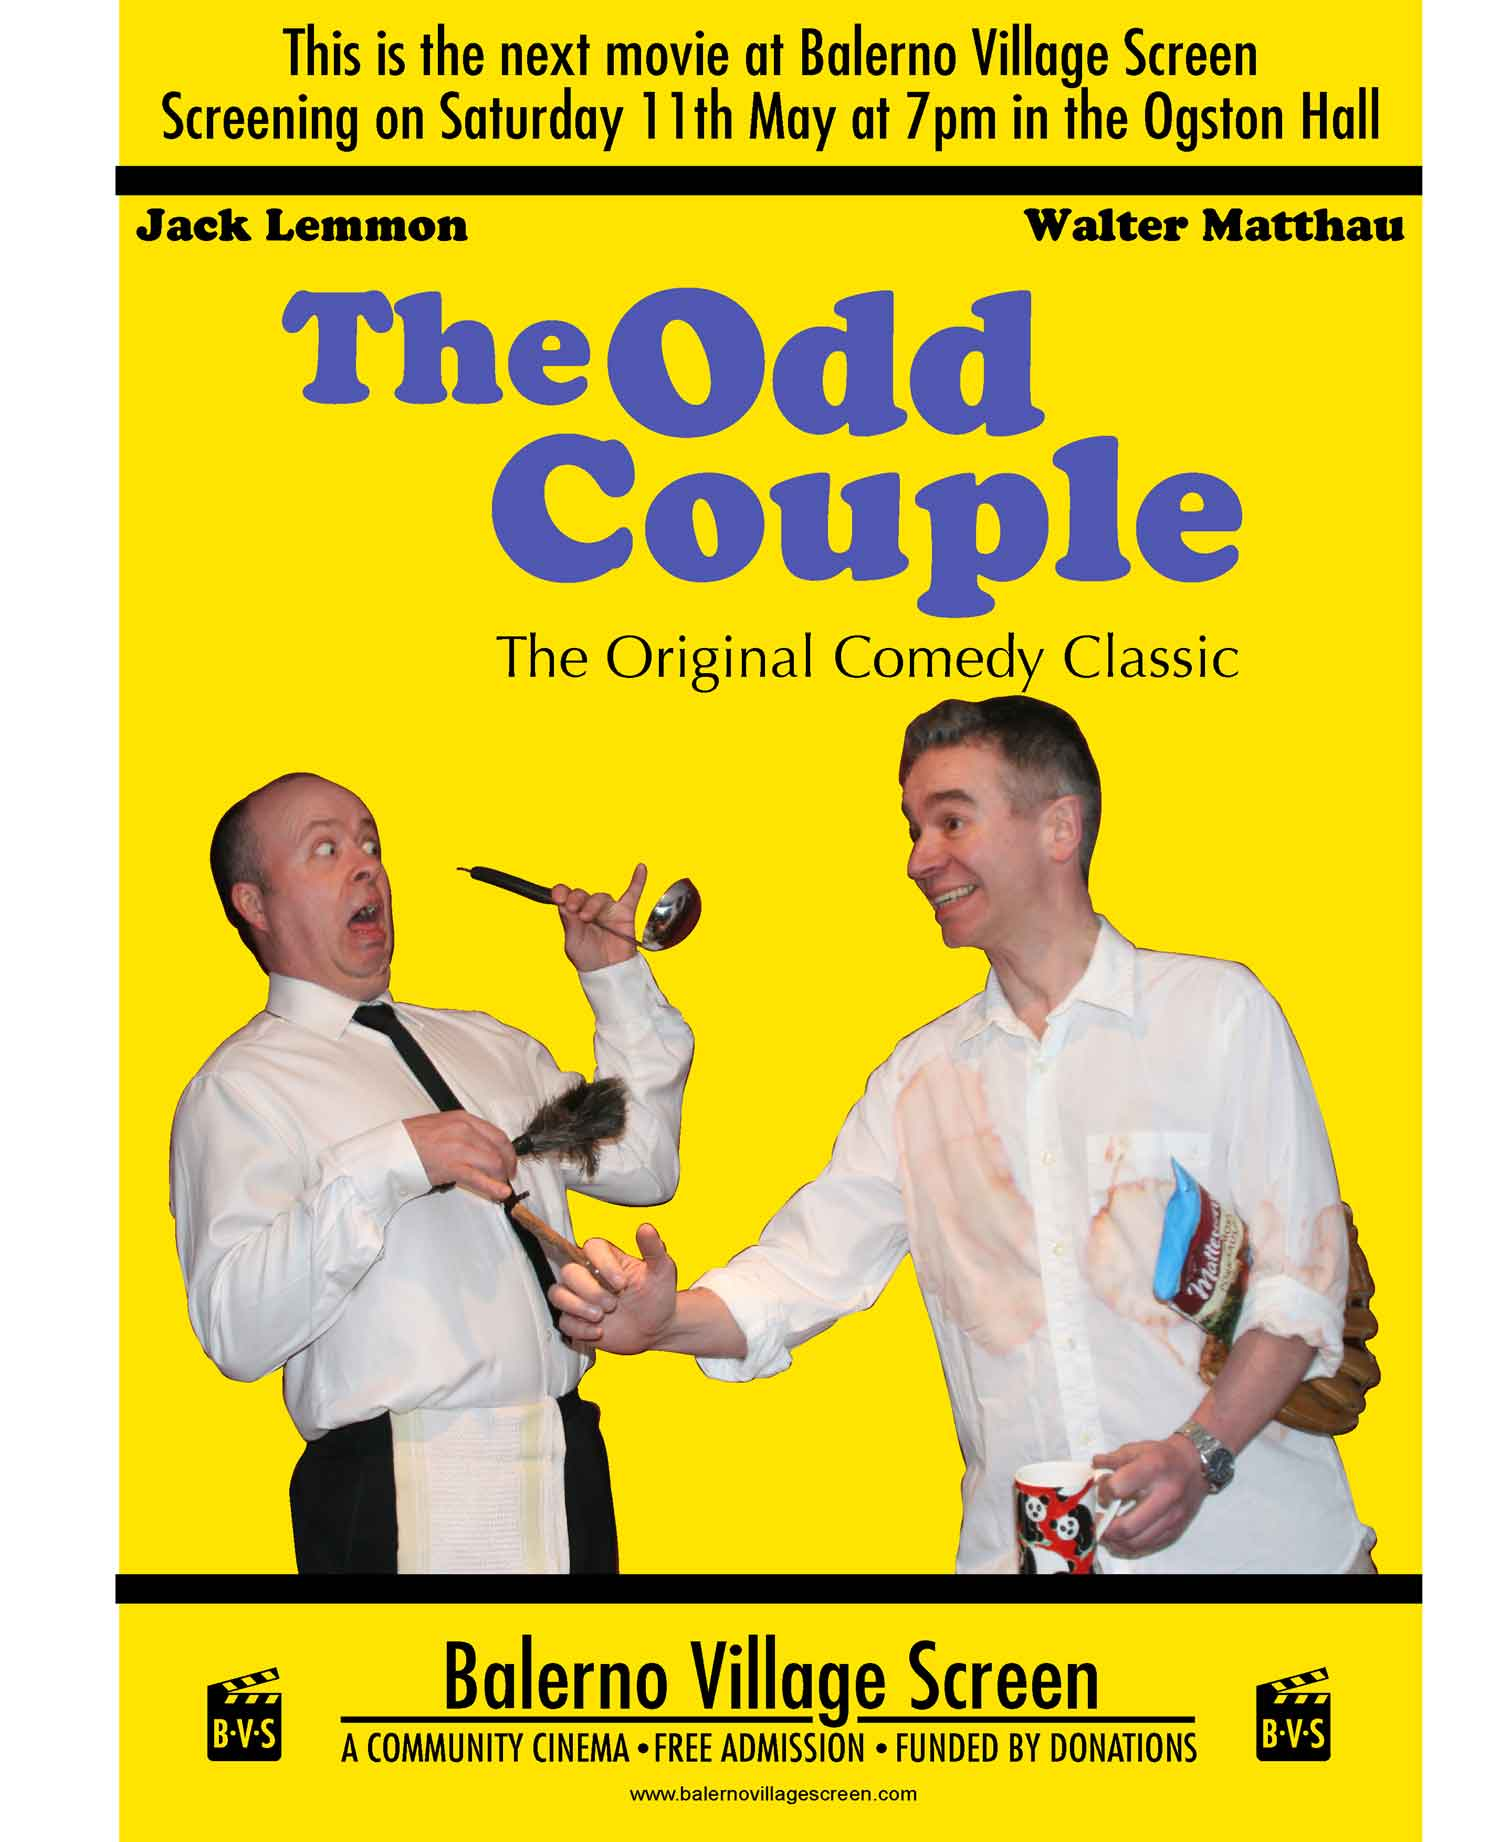 Our very own 'Odd Couple' - Balerno Village Screen